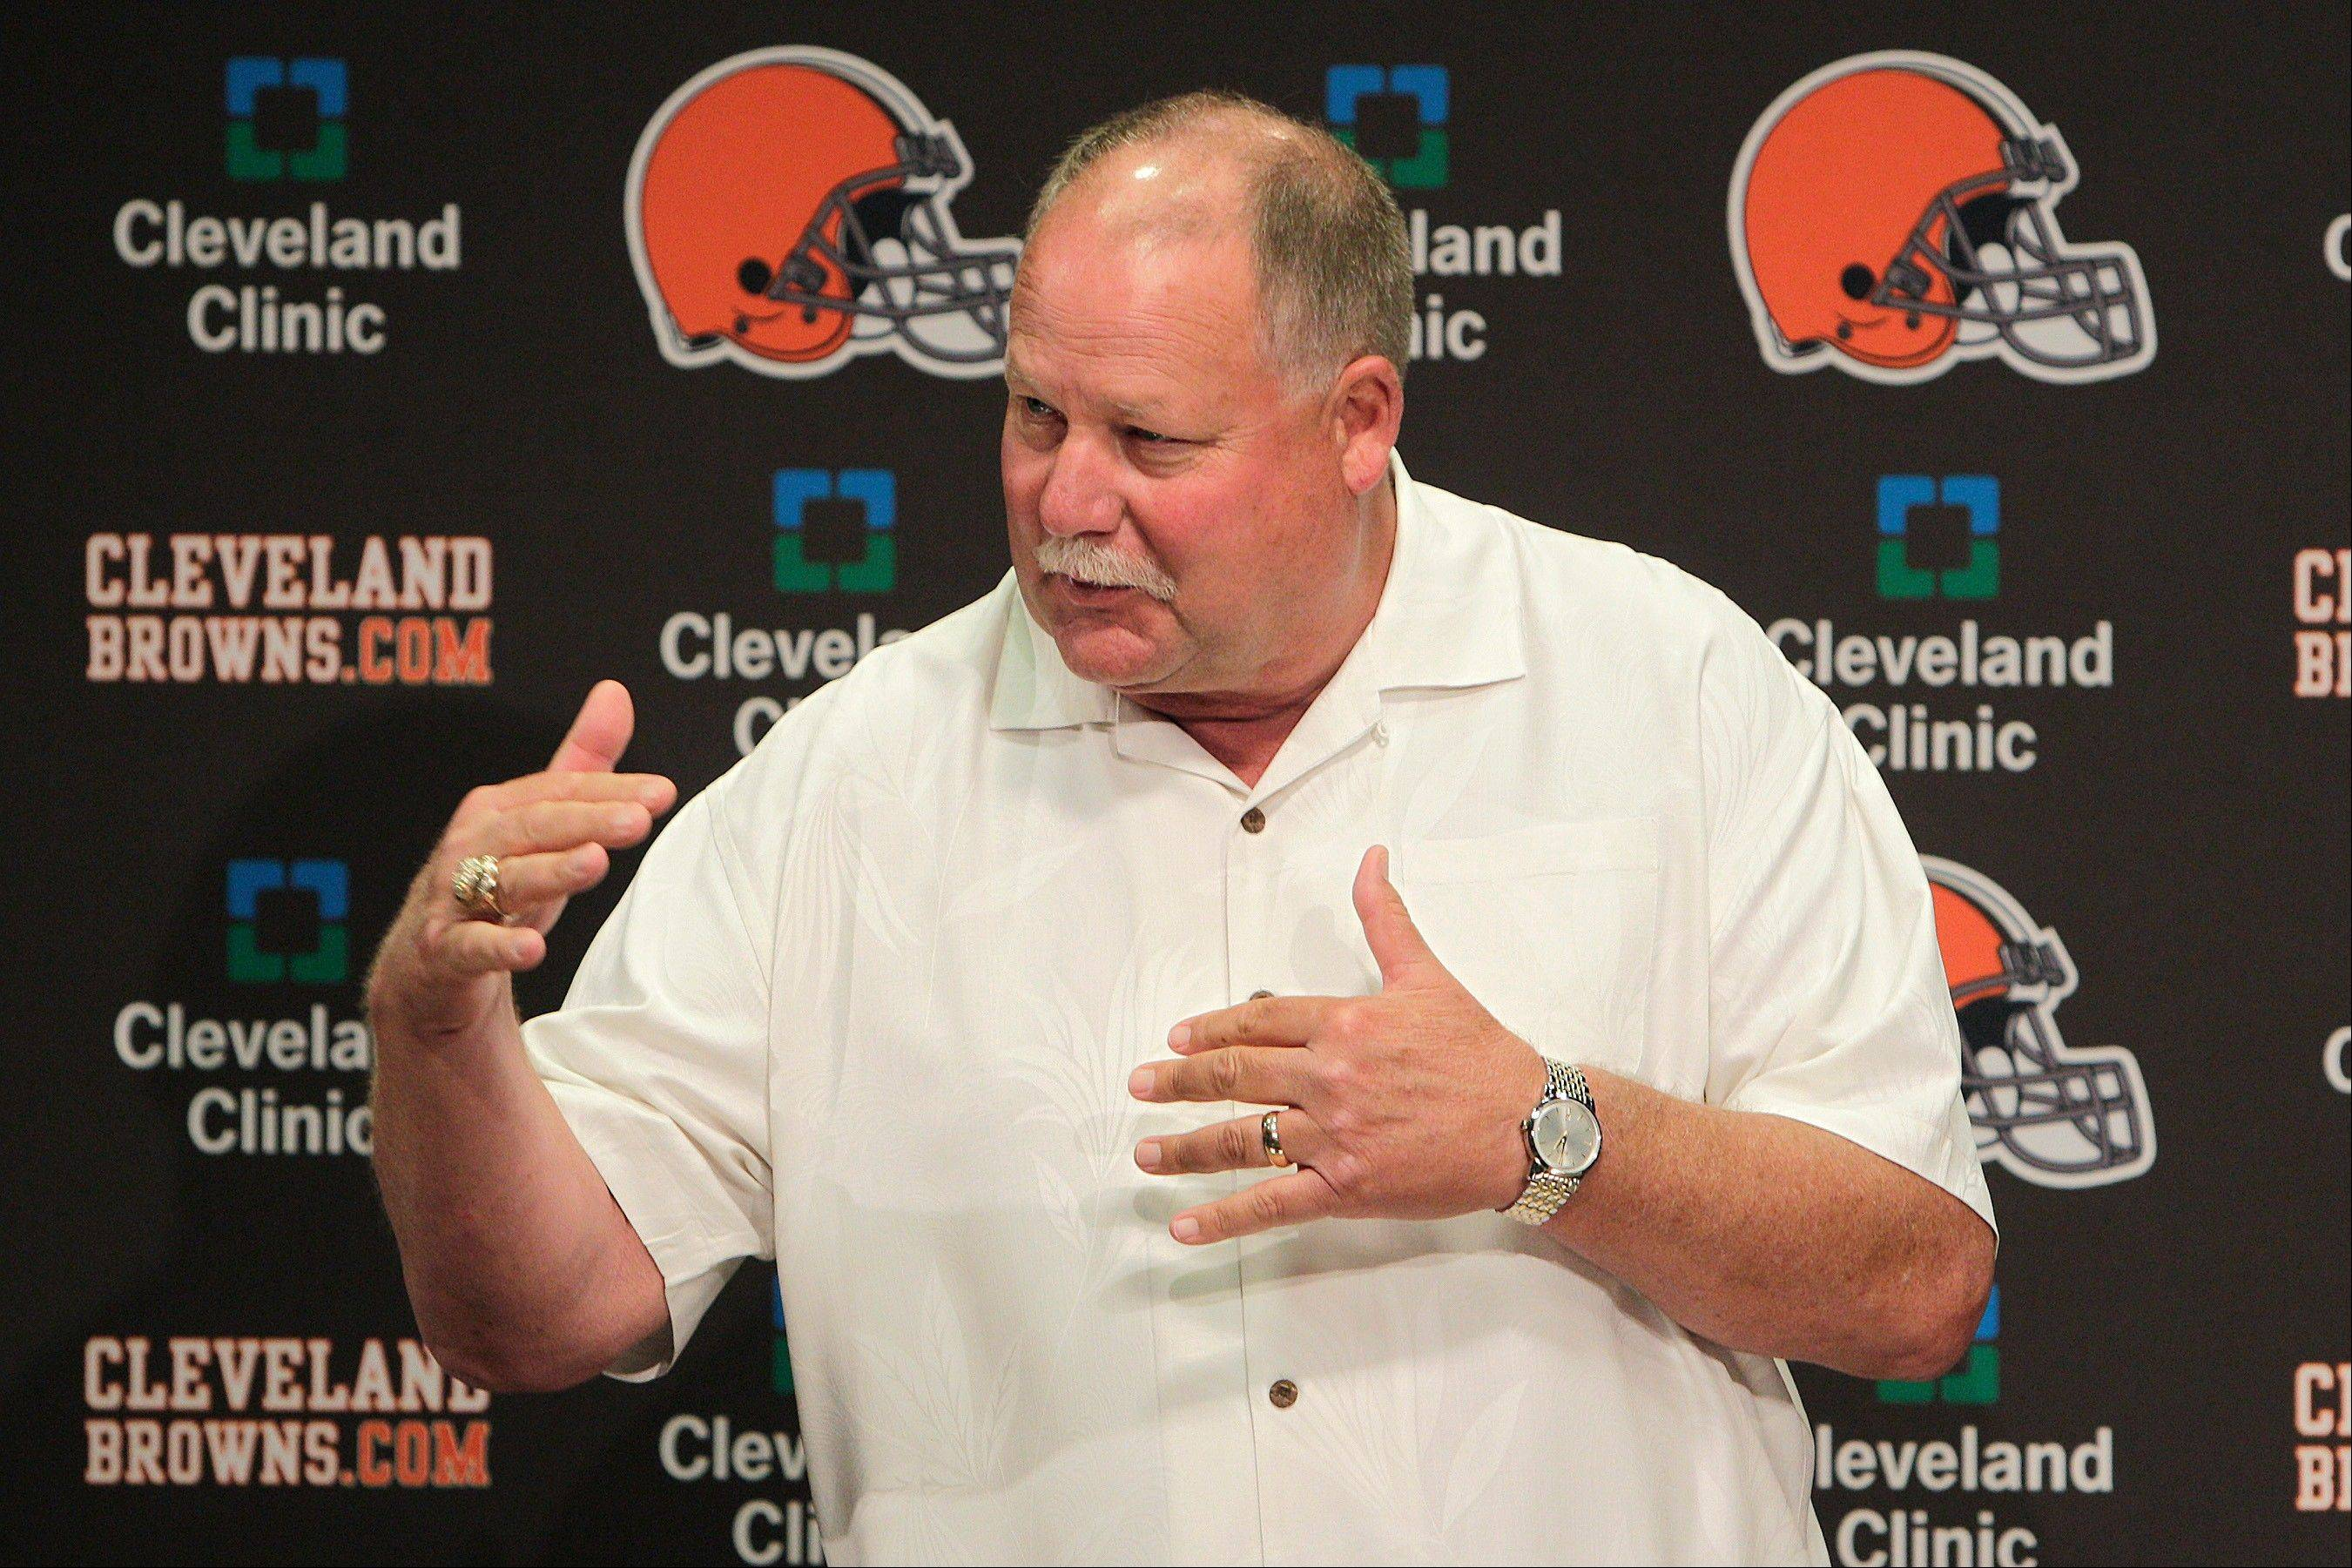 The sale of the Browns to Jimmy Haslam III was unanimously approved by NFL owners Tuesday and Mike Holmgren will be leaving the Browns at the end of the season. A person familiar with the sale told The Associated Press that Joe Banner has been hired as CEO of the Browns to replace Holmgren. The person spoke on condition of anonymity because Banner's hiring and Holmgren's departure have not been announced.